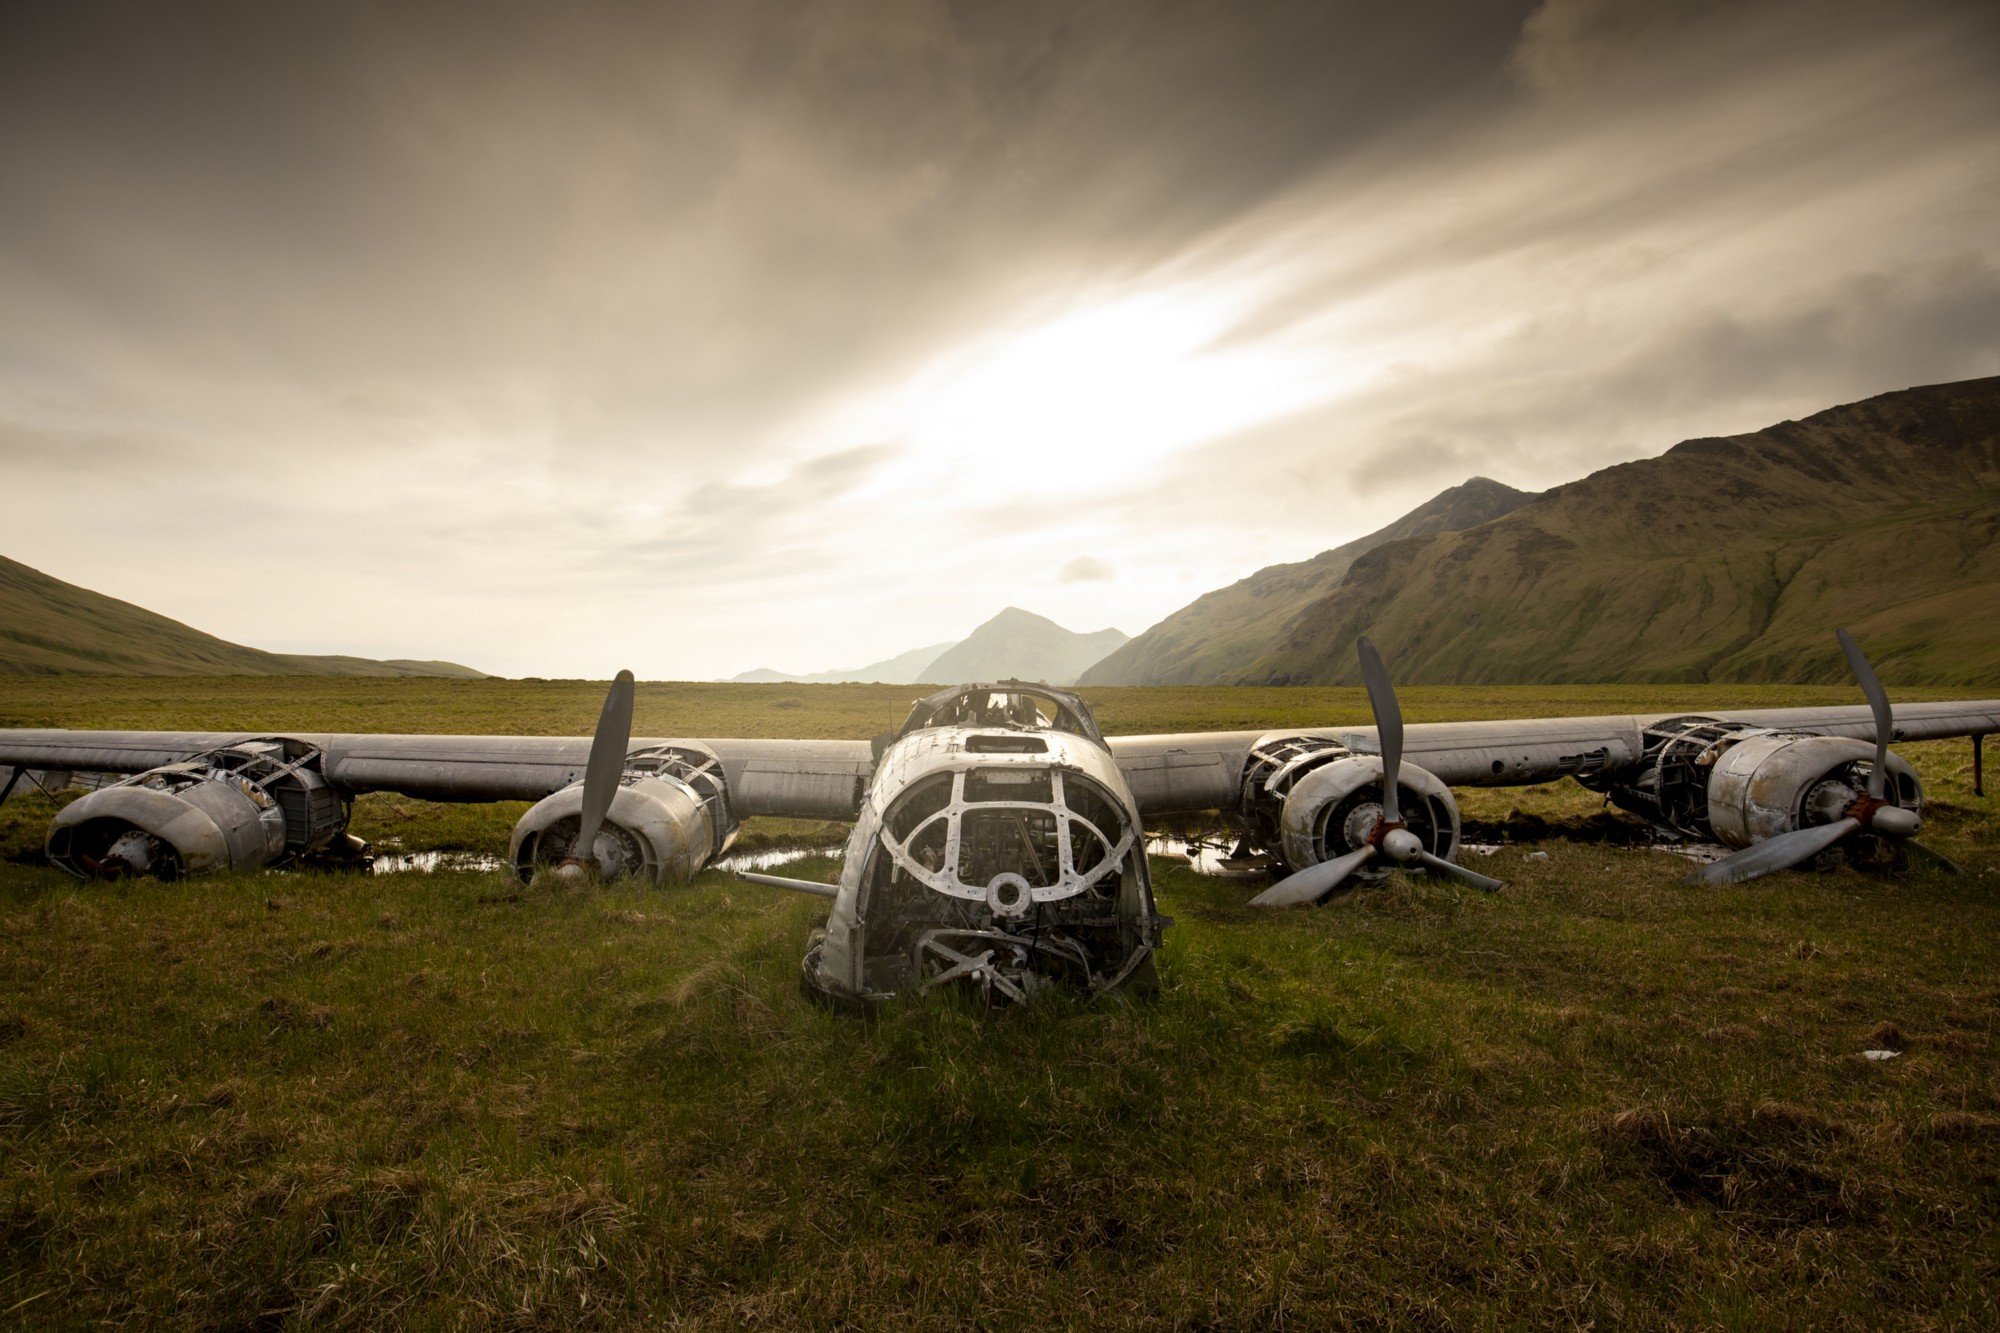 Landscape image showing a large metal aircraft with exposed fuselage and four engines half buried in the green tundra with mountains in the background.